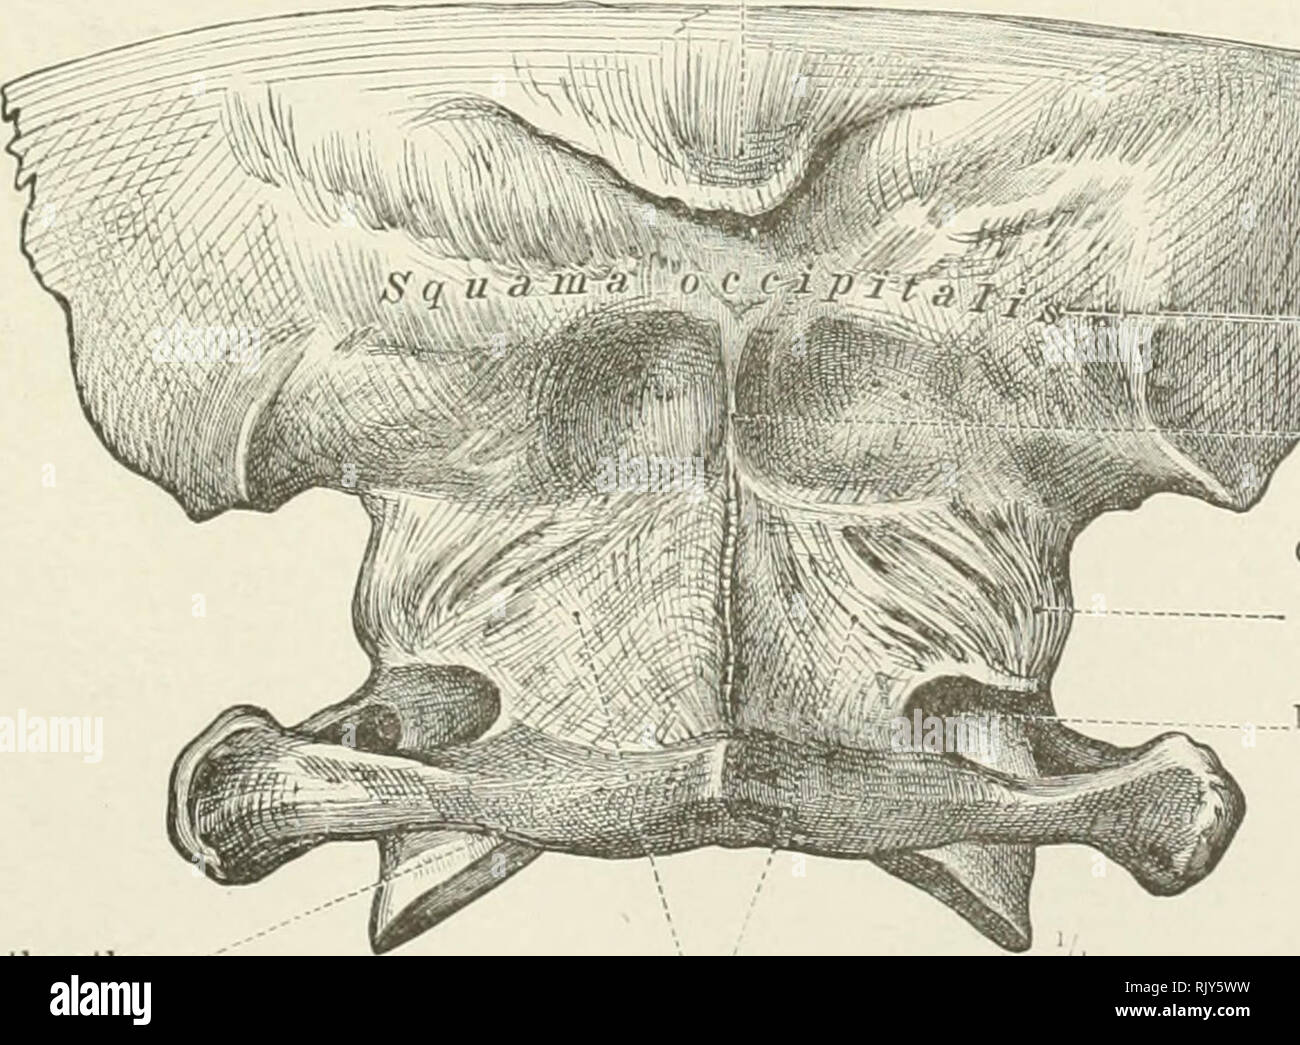 An Atlas Of Human Anatomy For Students And Physicians Anatomy Spinous Process Of The Sphenoid Bone Spina Angularis Tympanic Plate 1 Ars Tympanica Styloid Process Processus Styloideus Anterior Occipito Atlantal Ligament Membrana Atlanto Occipitalis Synchondroses (anatomy) a joint in between articulating bones in which the connecting medium is a cartilage that is eventually converted into bone before. https www alamy com an atlas of human anatomy for students and physicians anatomy spinous process of the sphenoid bone spina angularis tympanic plate 1ars tympanica styloid process processus styloideus anterior occipito atlantal ligament membrana atlanto occipitalis anterior fig 423antep or occipito atlantal ligament and petrobasilar synchondrosis the atlas with the posterior portion of the base of the skull seen from before external occipital protuberance piotuberantia occipitalis externa posterior arch of the atlas arcus posterior atlantis mi nvw squamous portion of jar ne occipital bone exter image235395941 html